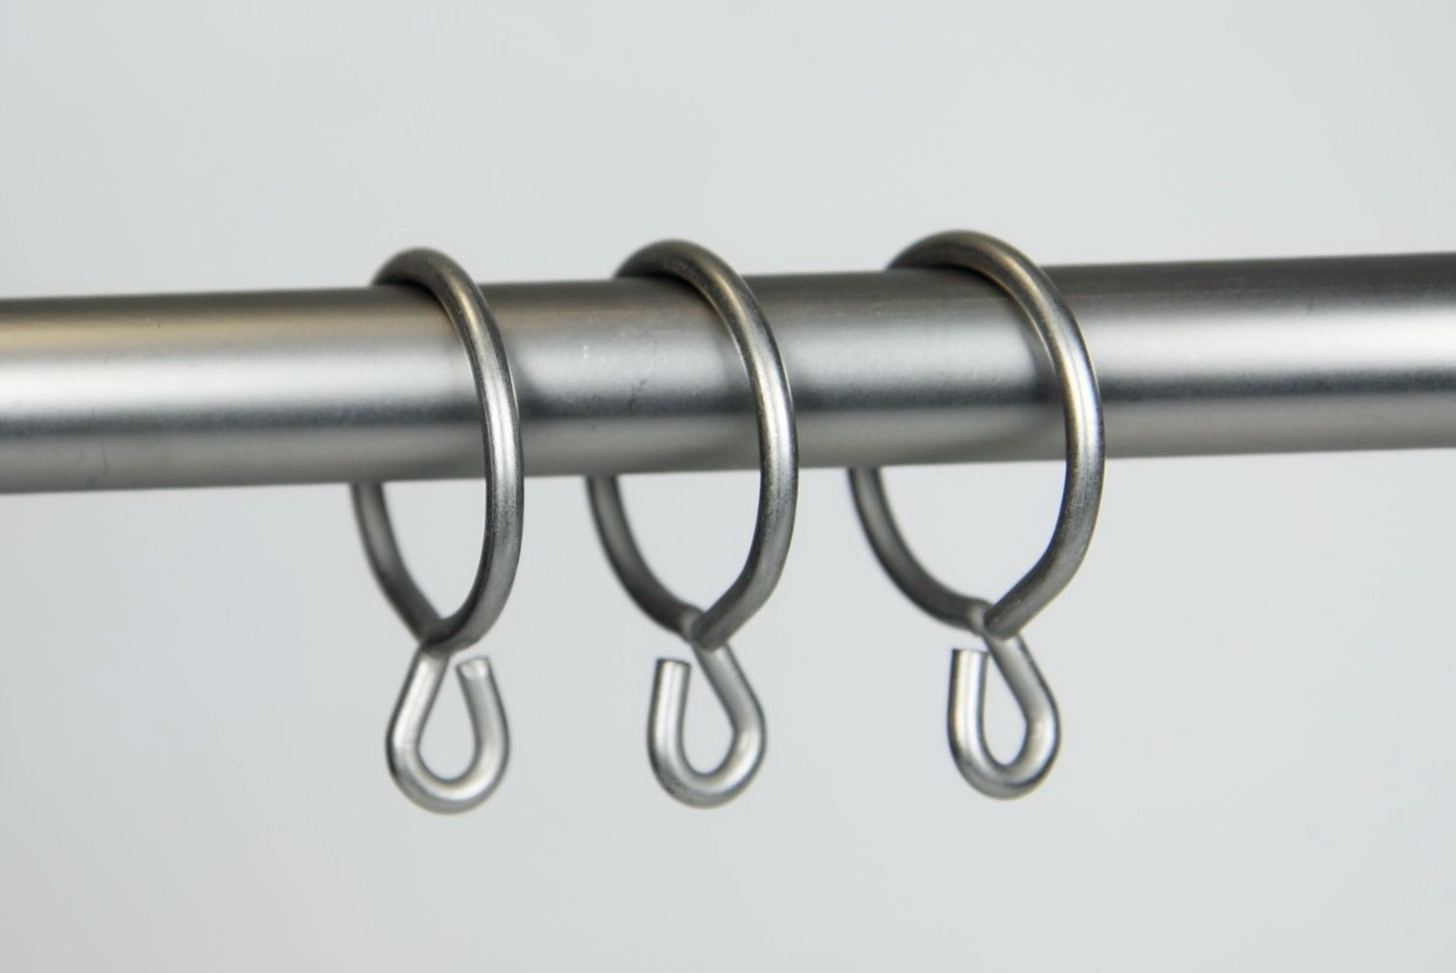 Curtain Rod Rings With Eyelets